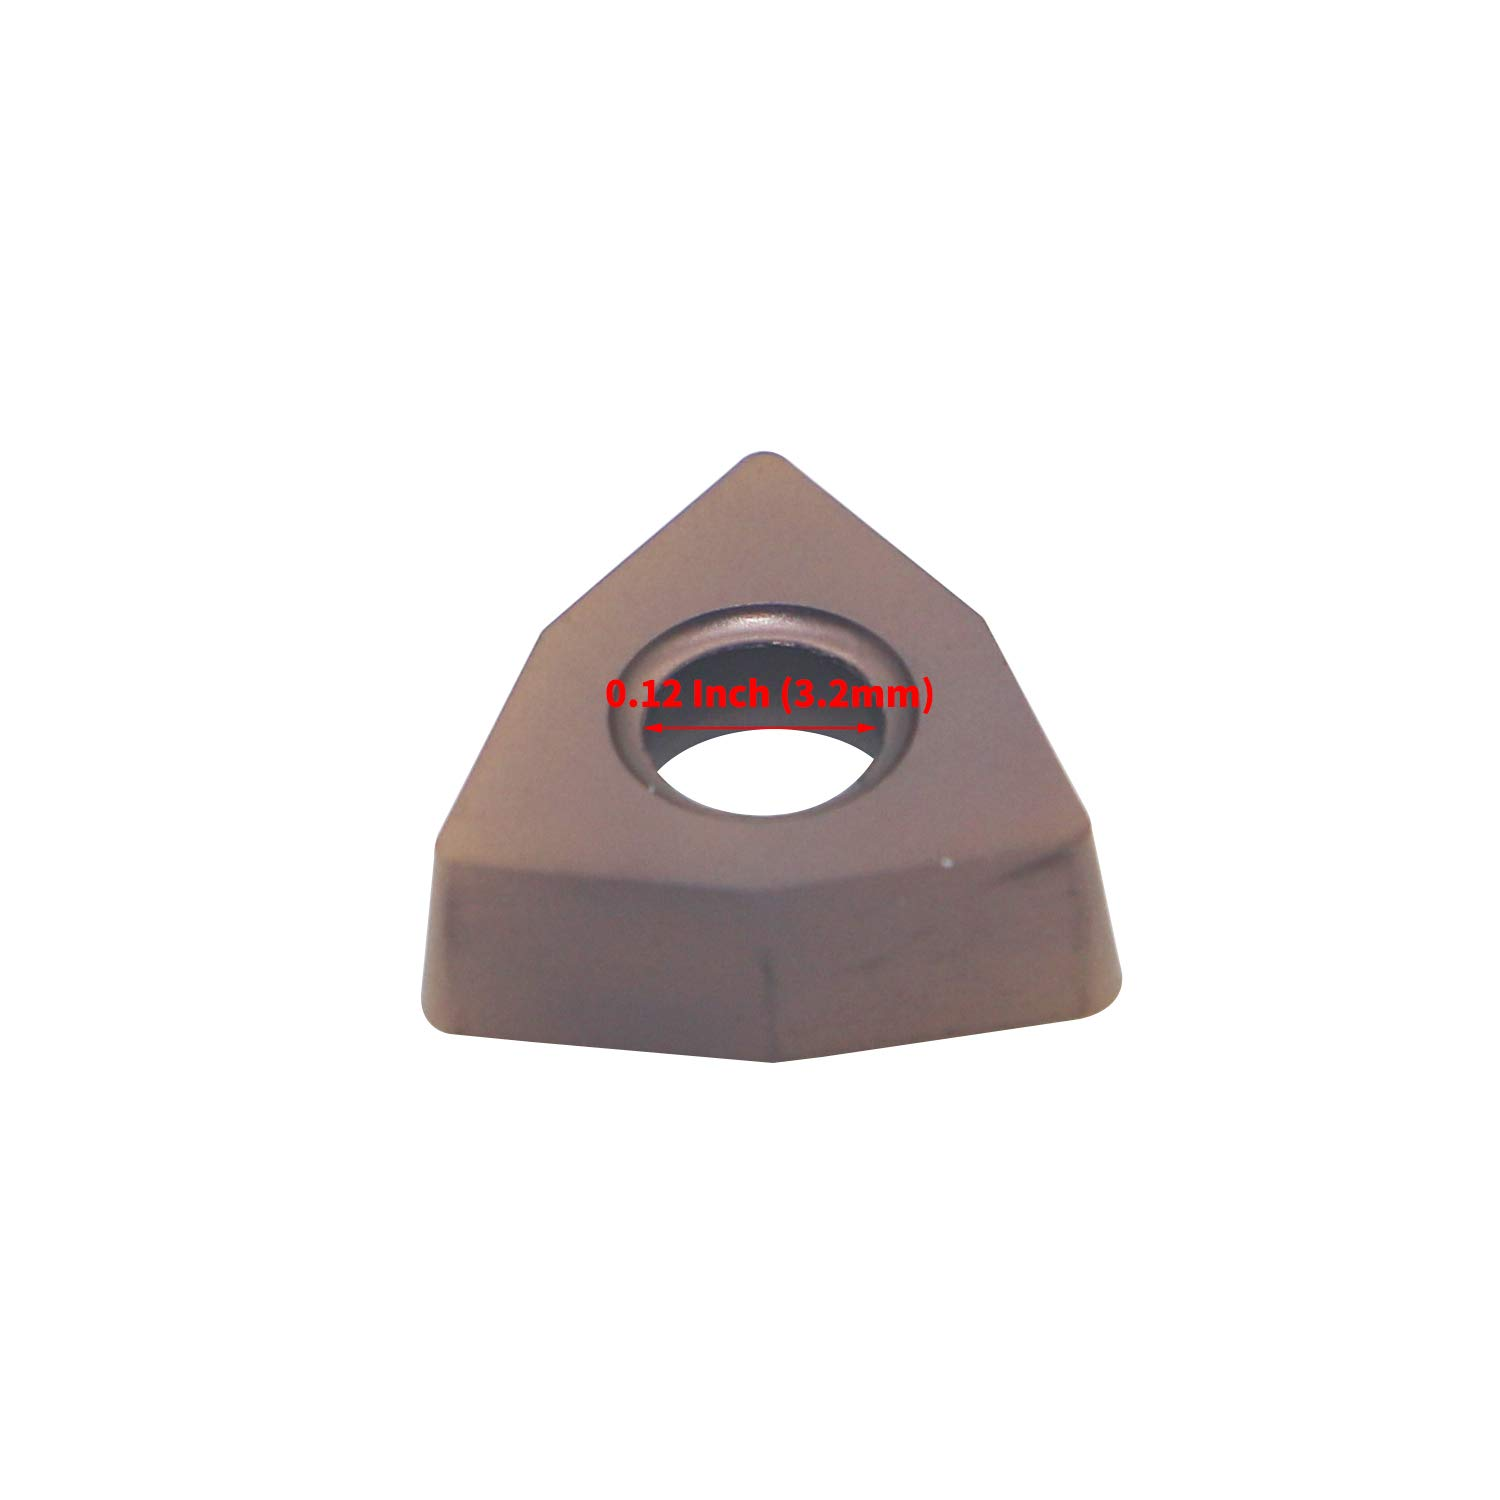 U Drill Quick Drill is Used for CNC Lathe Blades for Indexable Turning Tool Holder Blade Replacement. Carbide Insert WCMT050304 Water Jet Drill WCMT2.52